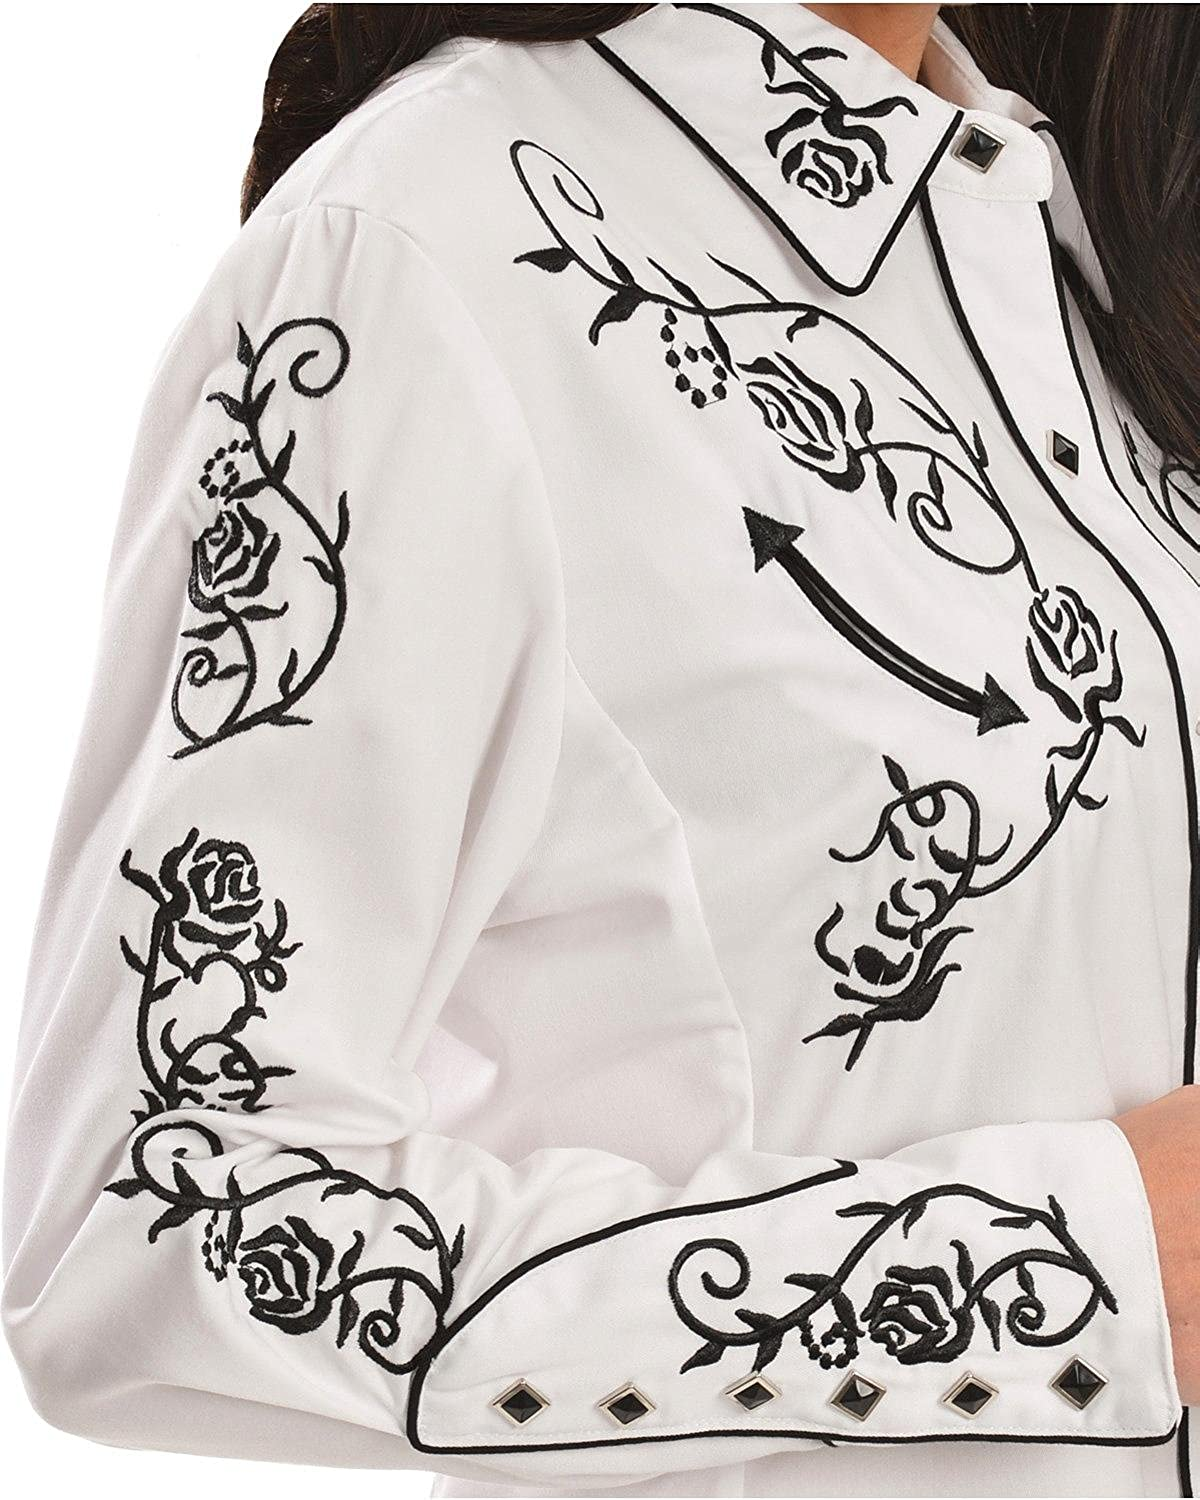 Floral Embroidered Retro Western Shirt Scully Womens